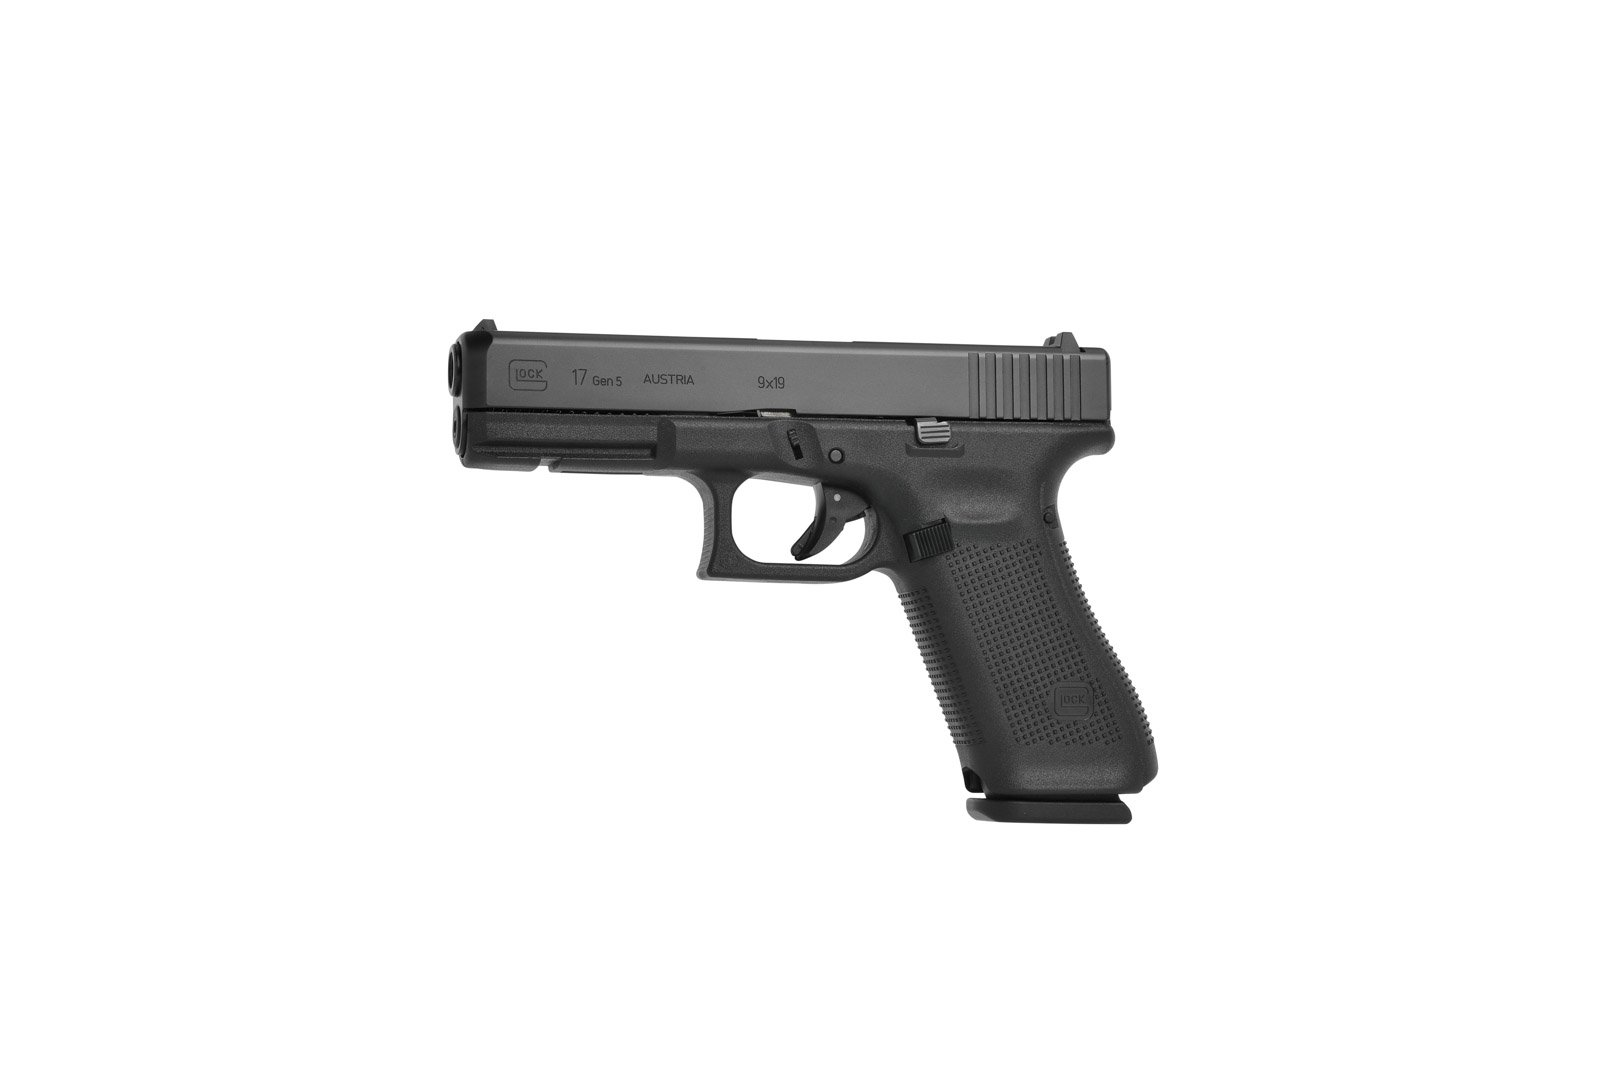 Glock 17 Gen 5 - 9mm (Ameriglo Sights)